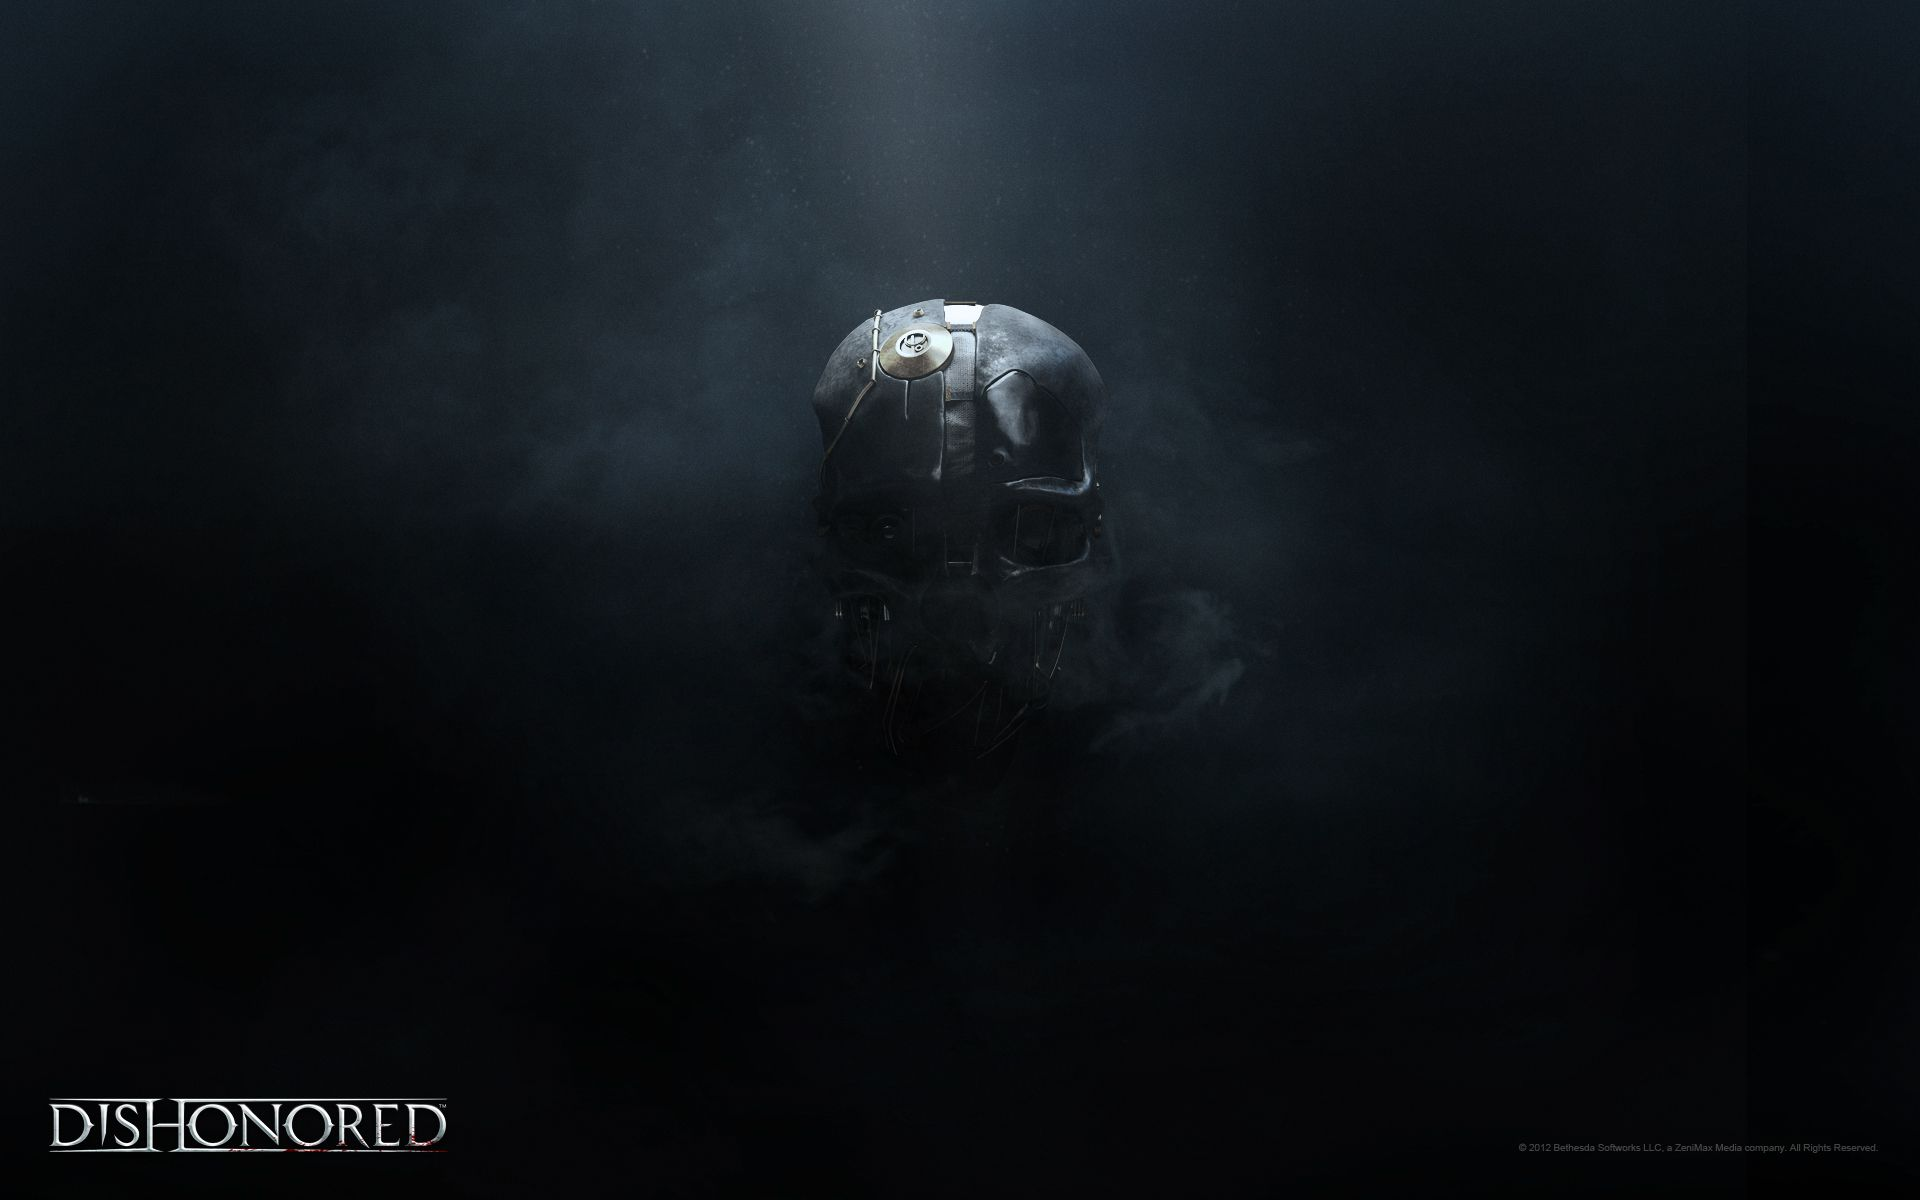 dishonored images dishonored hd wallpaper and background